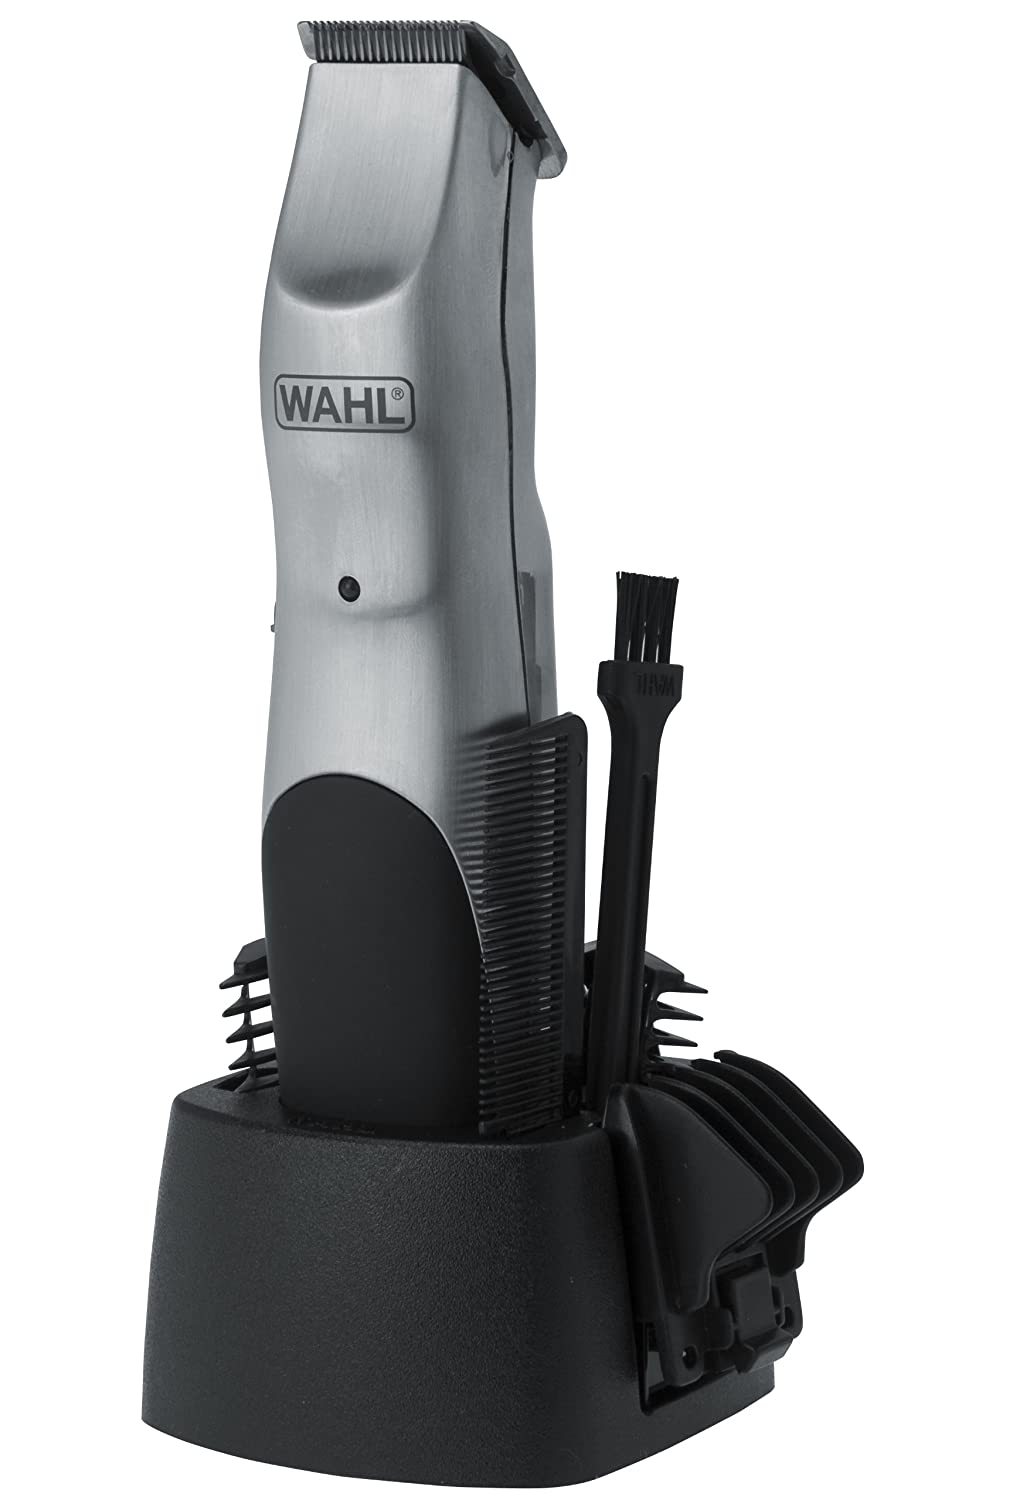 wahl cordless rechargeable beard mustache trimmer clippers hair shaver cutters ebay. Black Bedroom Furniture Sets. Home Design Ideas